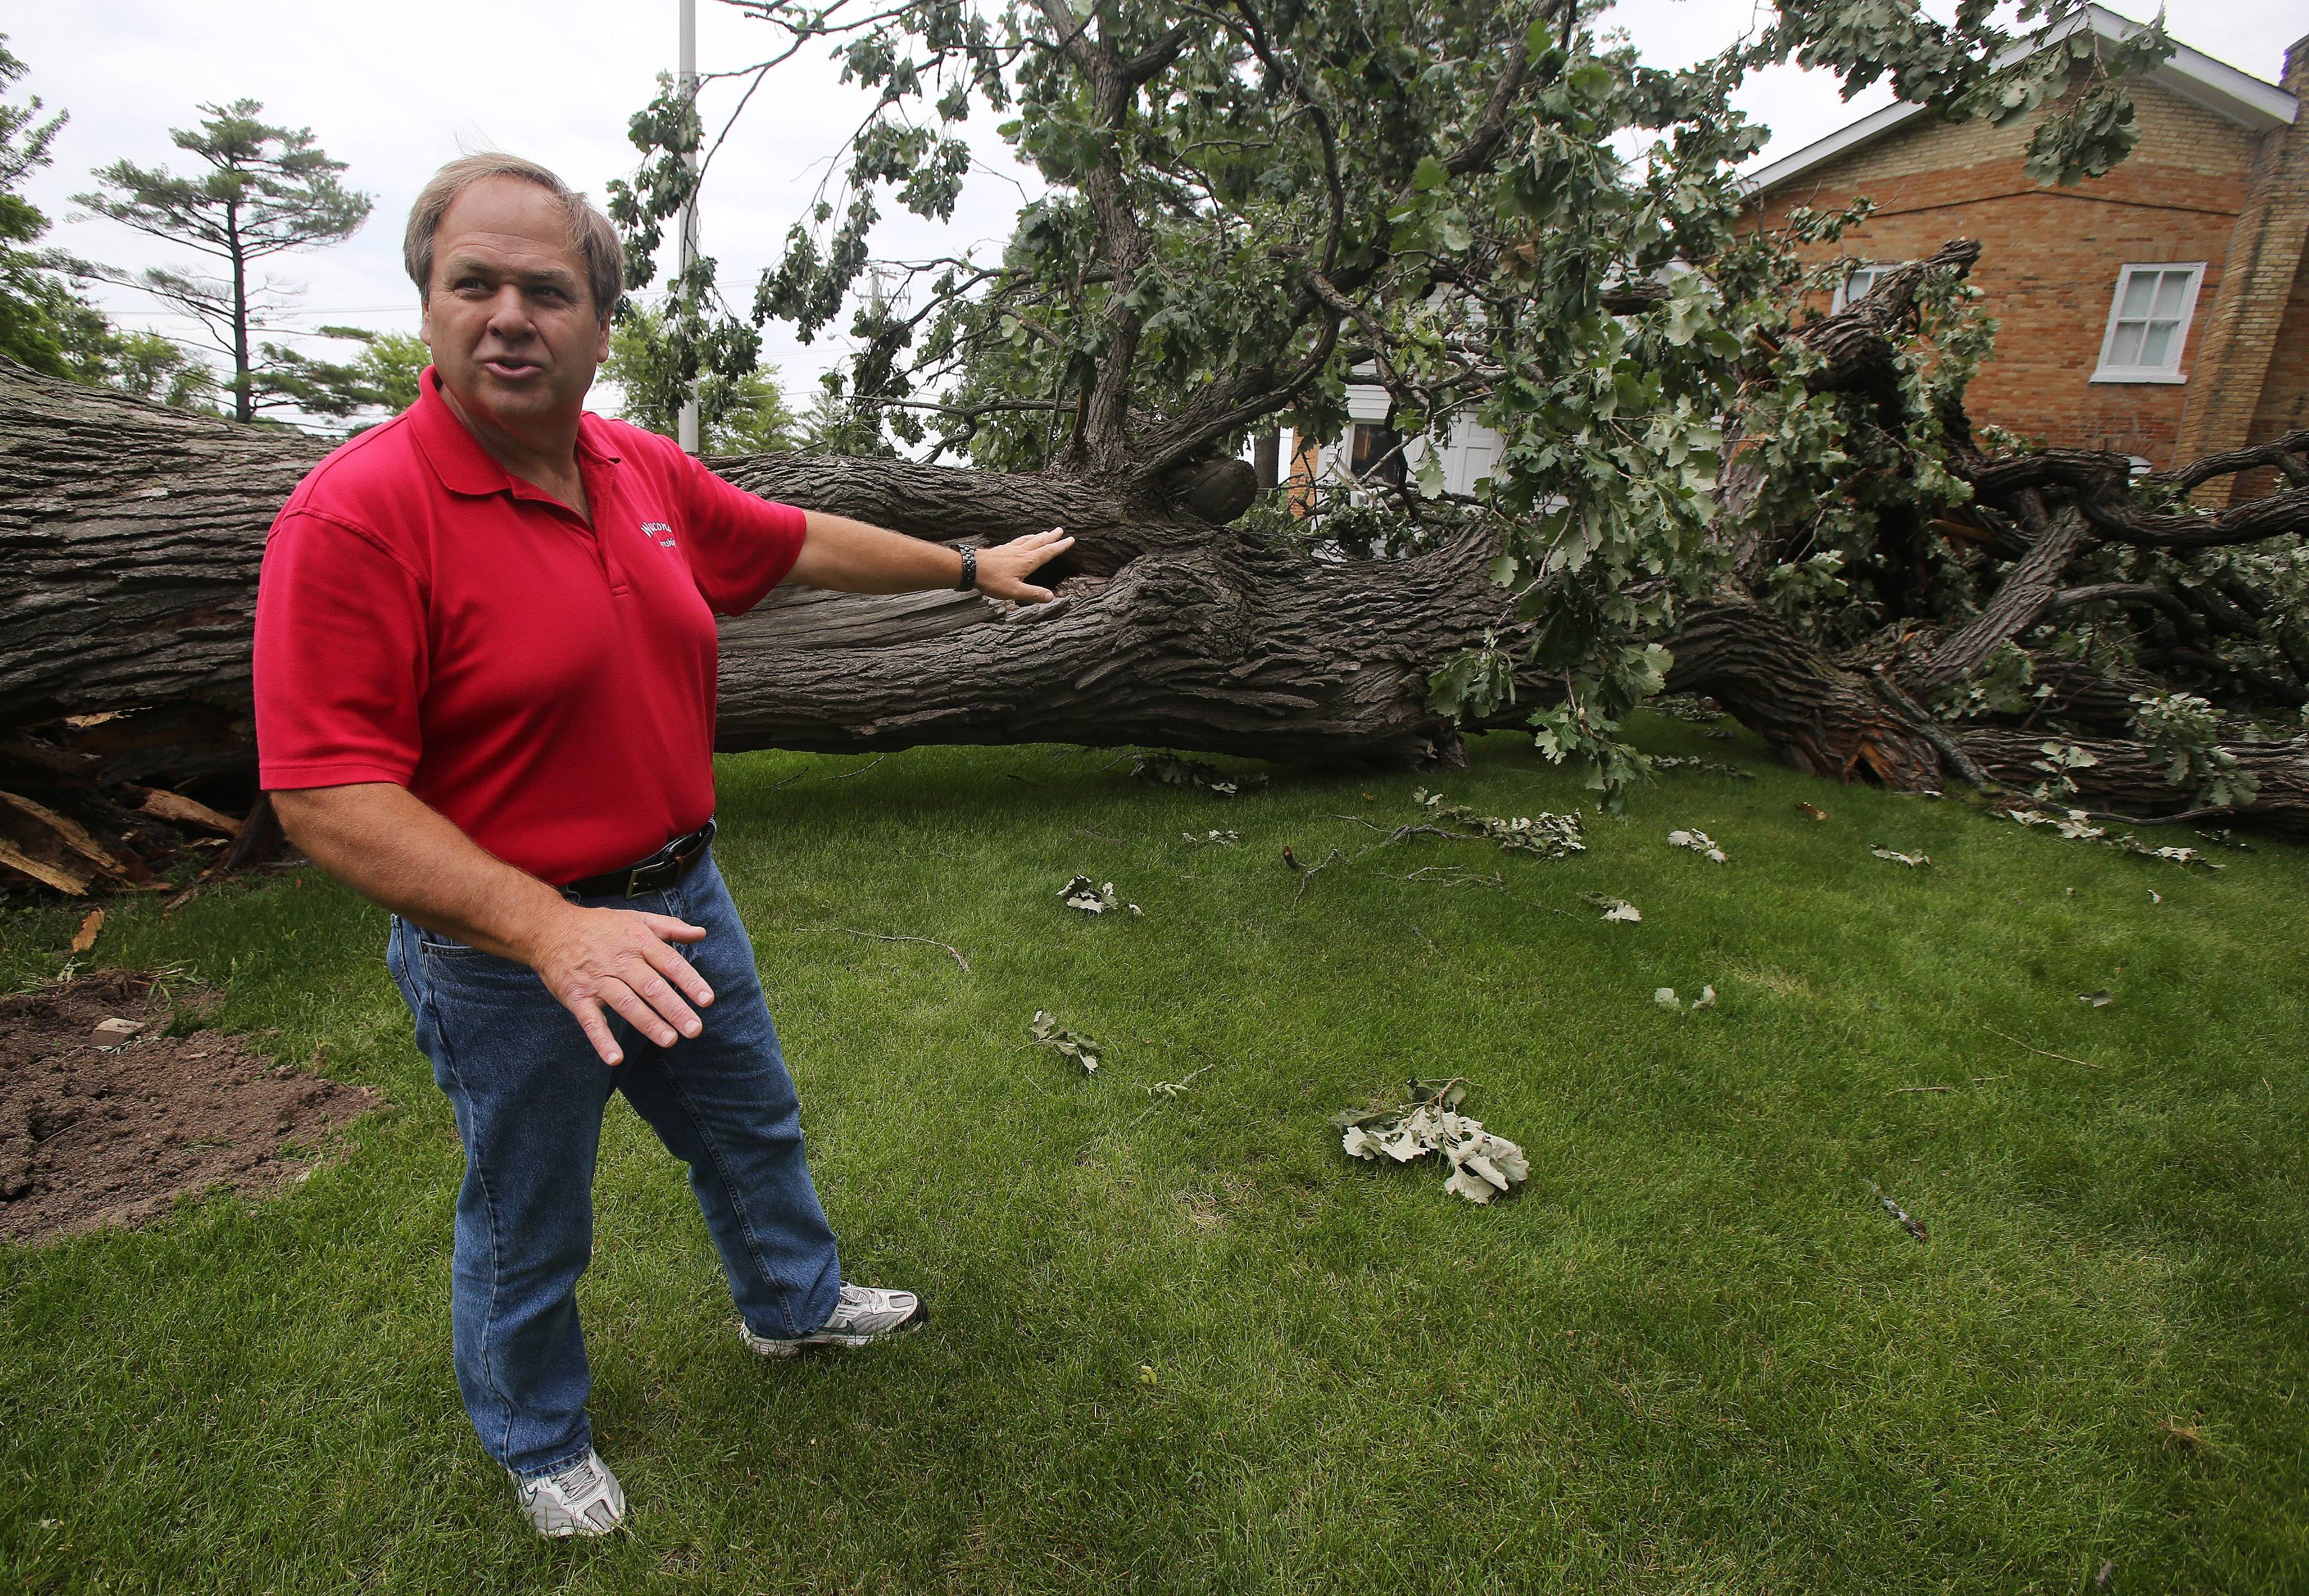 Wauconda Township Supervisor Glenn Swanson discusses the damage done by a tree that fell during a storm Saturday and hit the back porch of the historic Andrew C. Cook House in Wauconda.